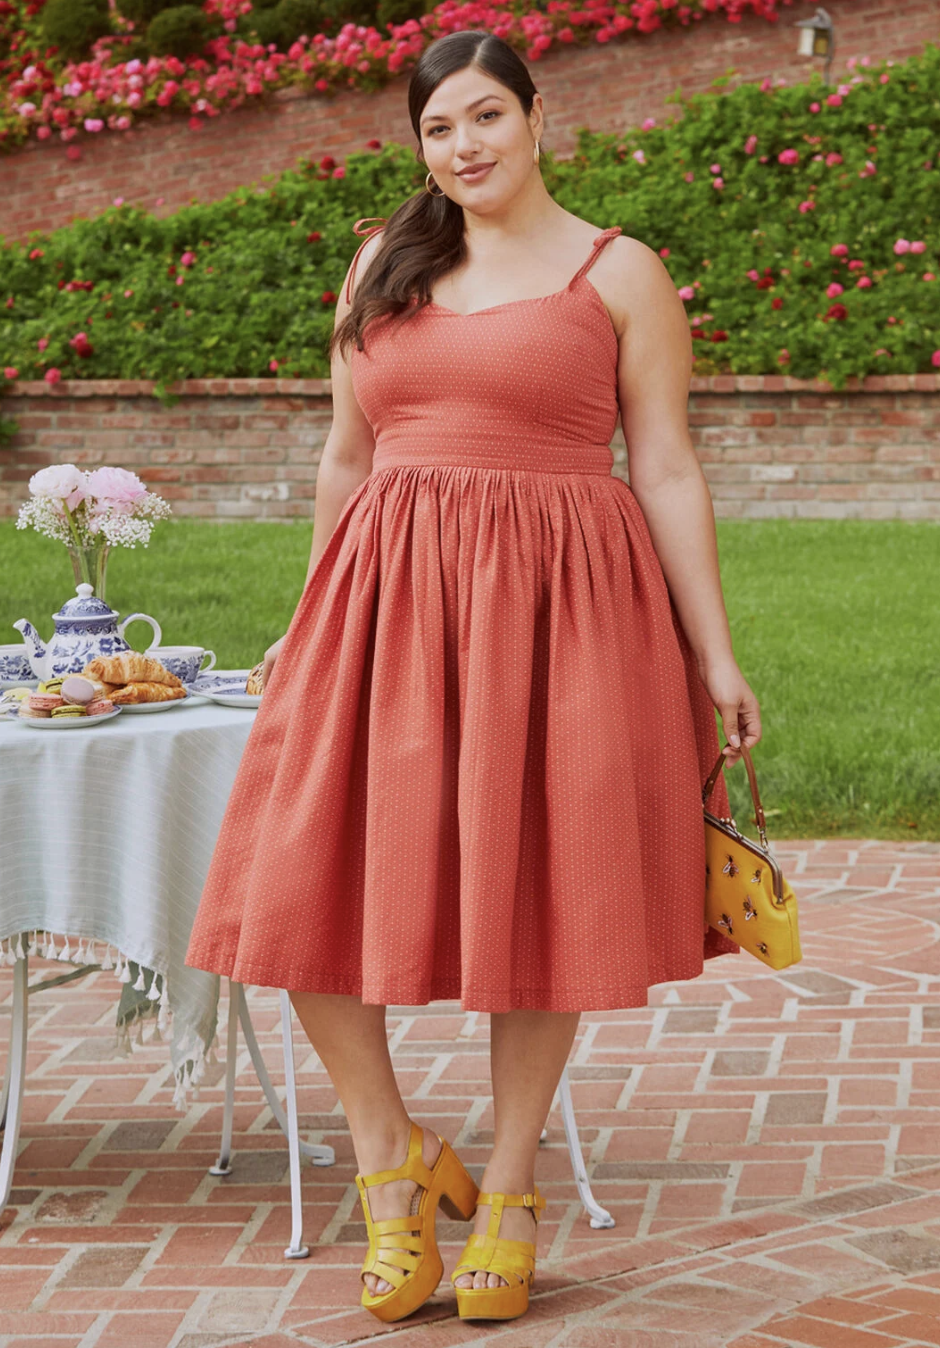 A model in the orange dress, which falls just below the knee